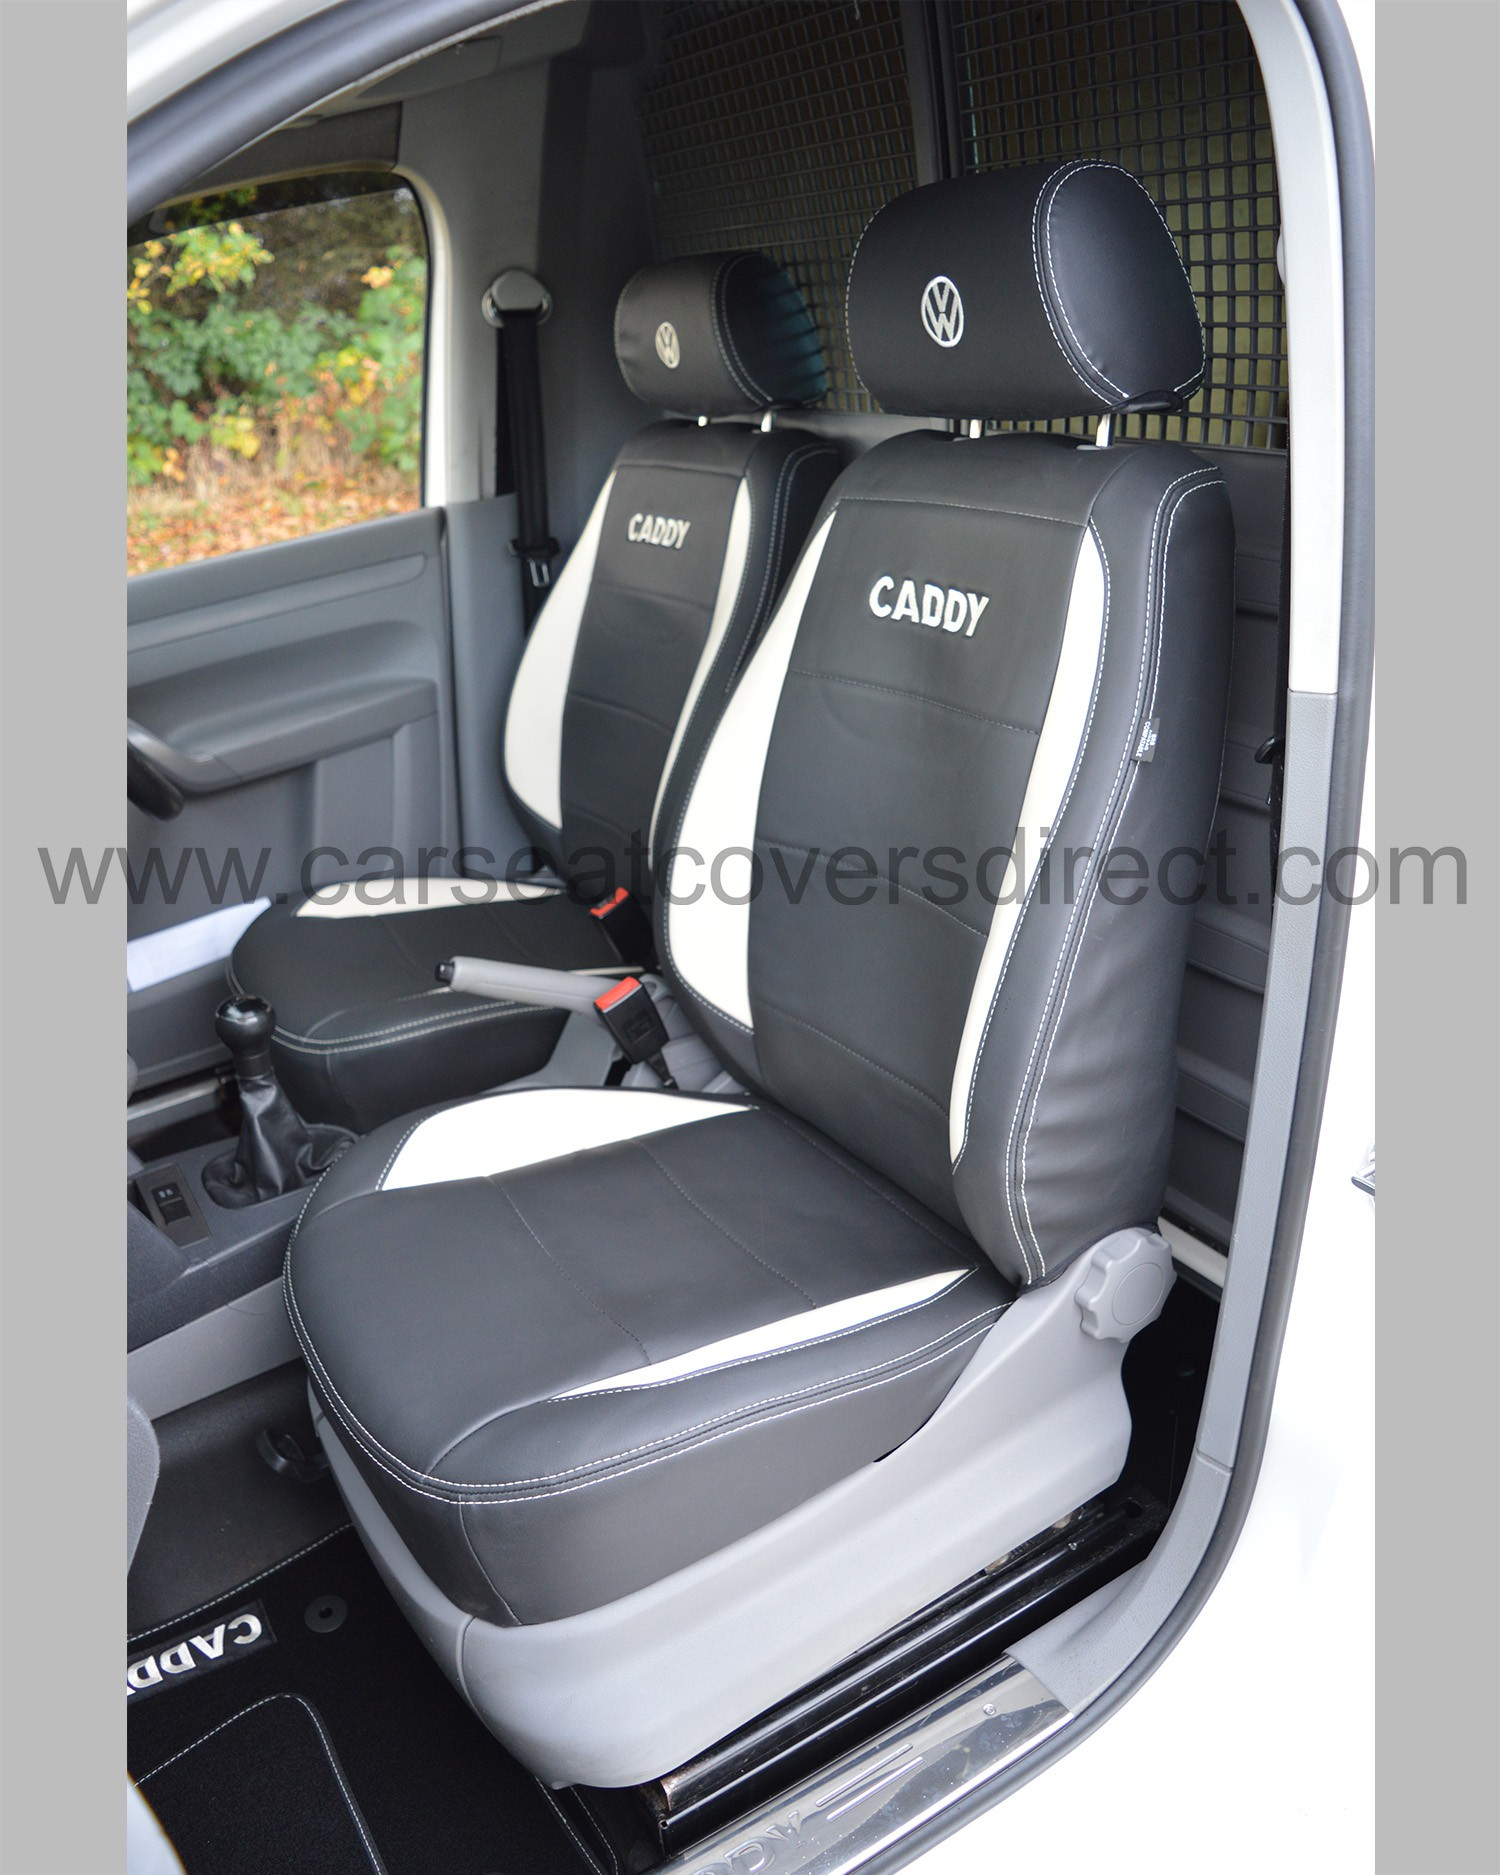 Volkswagen VW Caddy Seat Covers